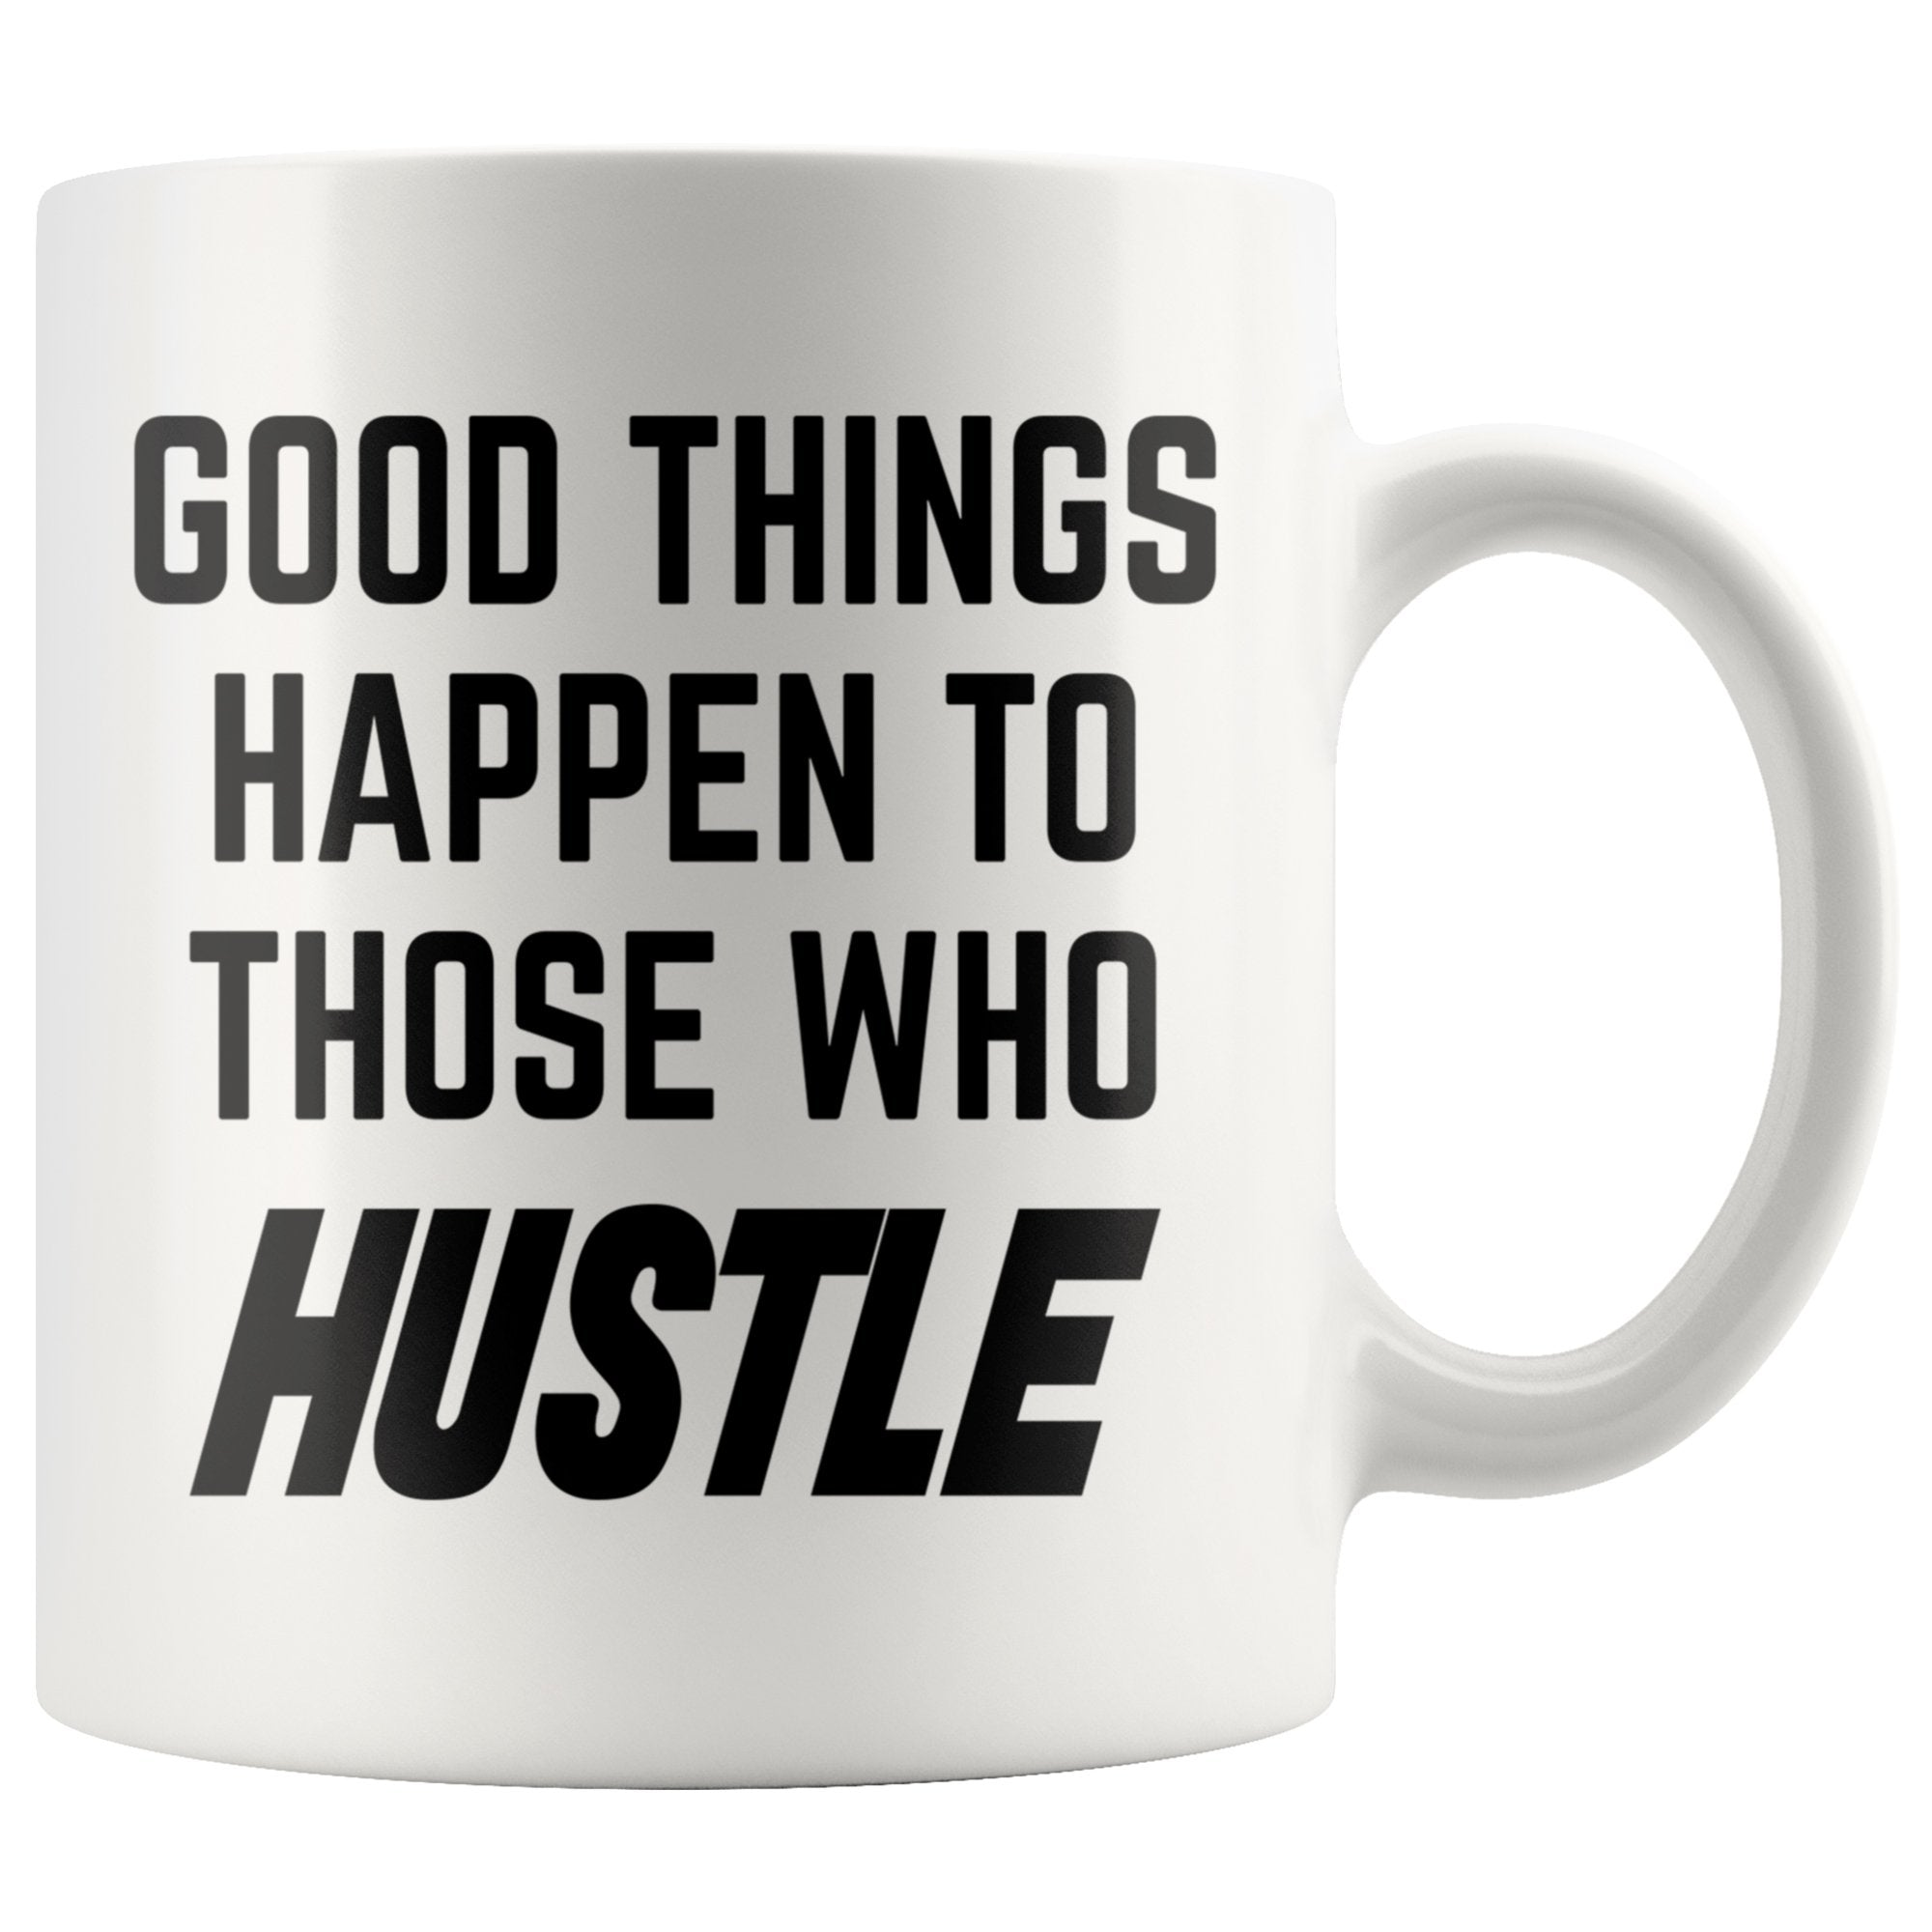 Good Things Happen To Those Who Hustle Motivational White Coffee Mug